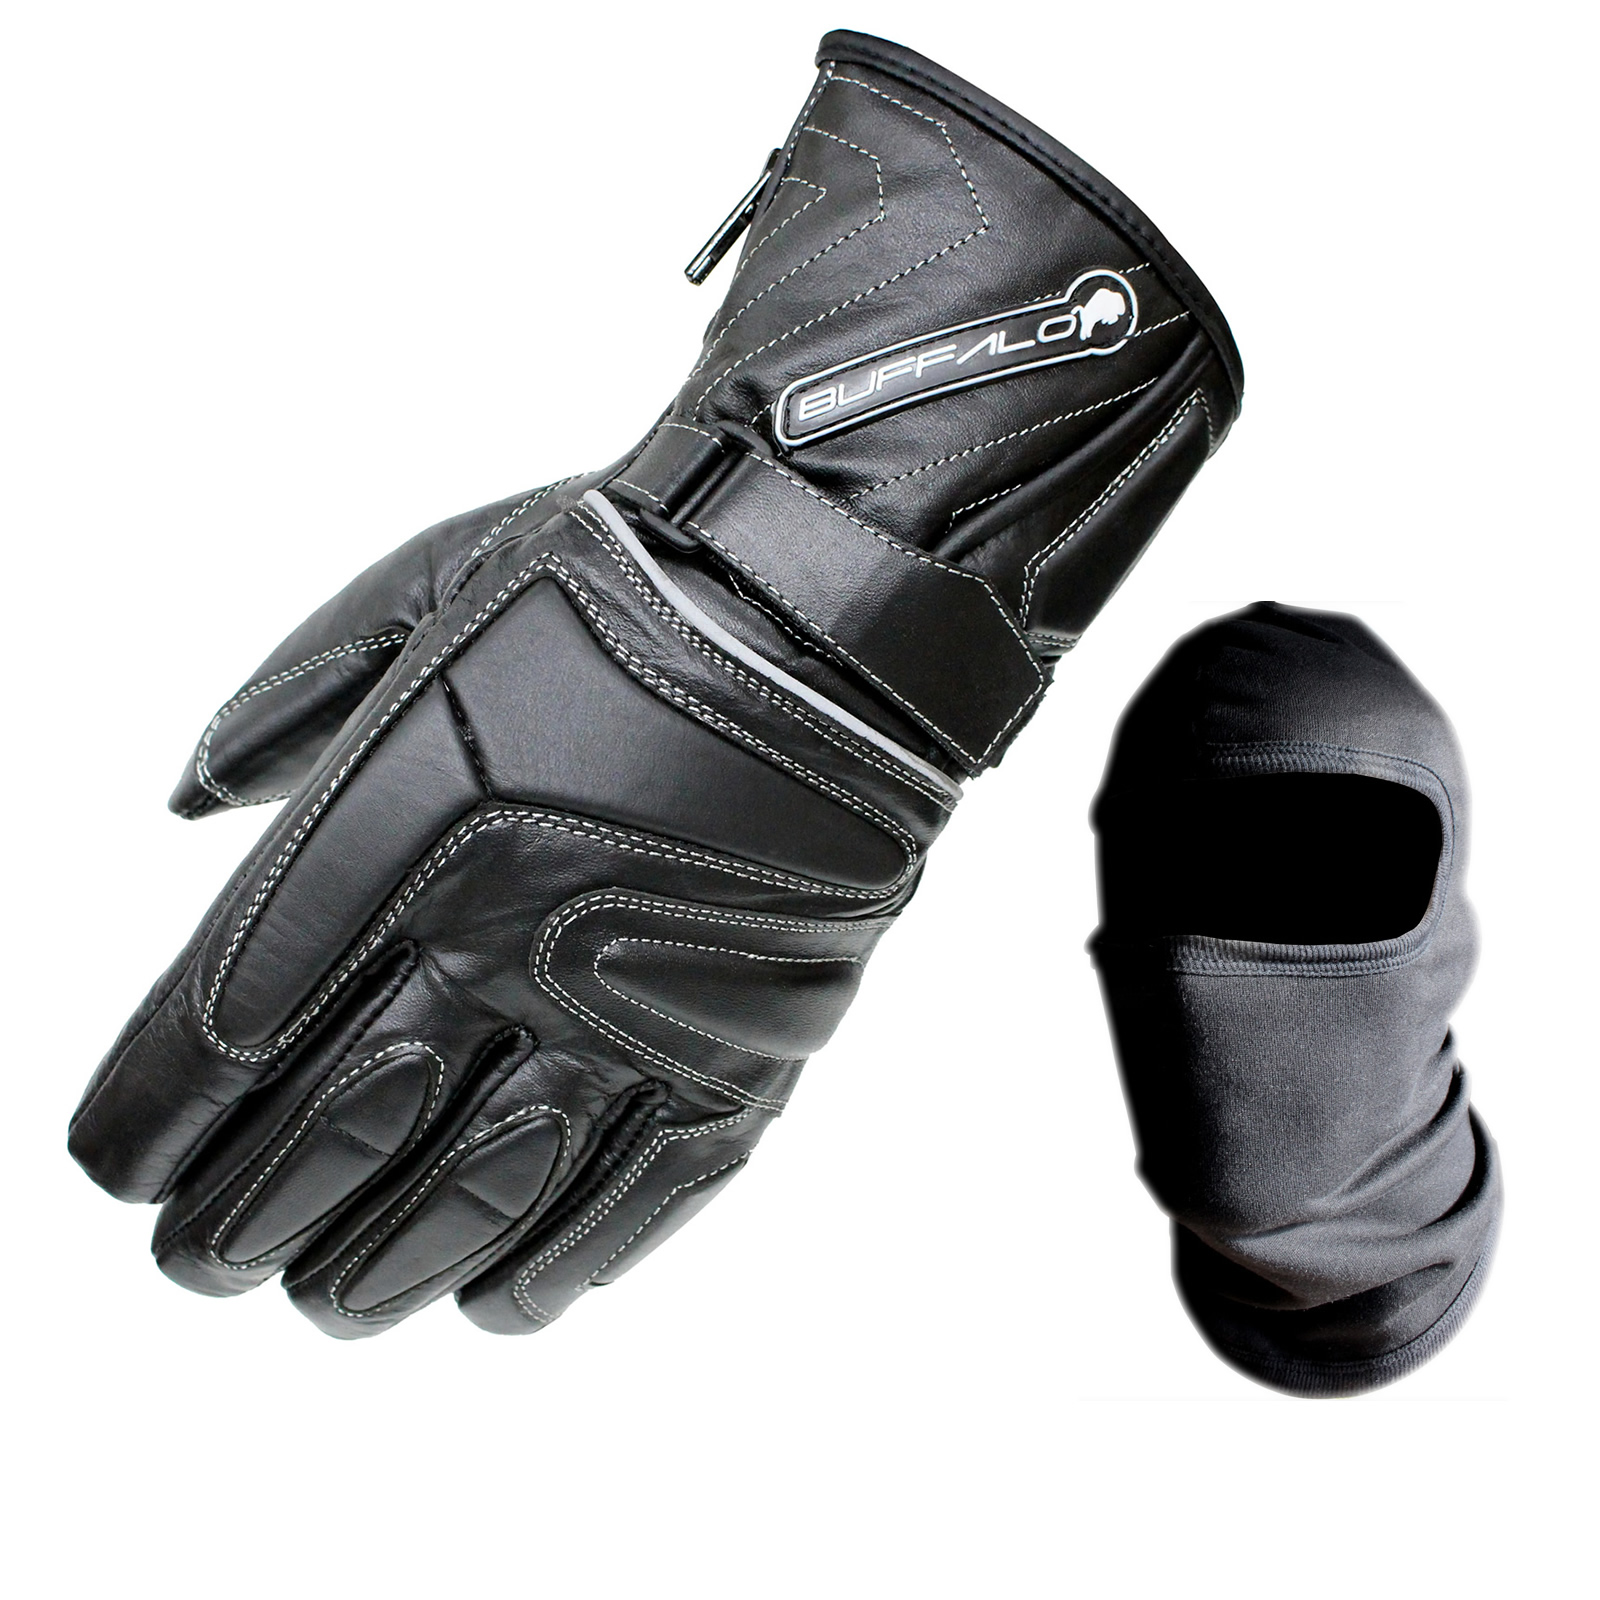 Motorcycle leather gloves waterproof - Buffalo Arctic Waterproof Wp Thermal Leather Motorcycle Scooter Winter Gloves Enlarged Preview